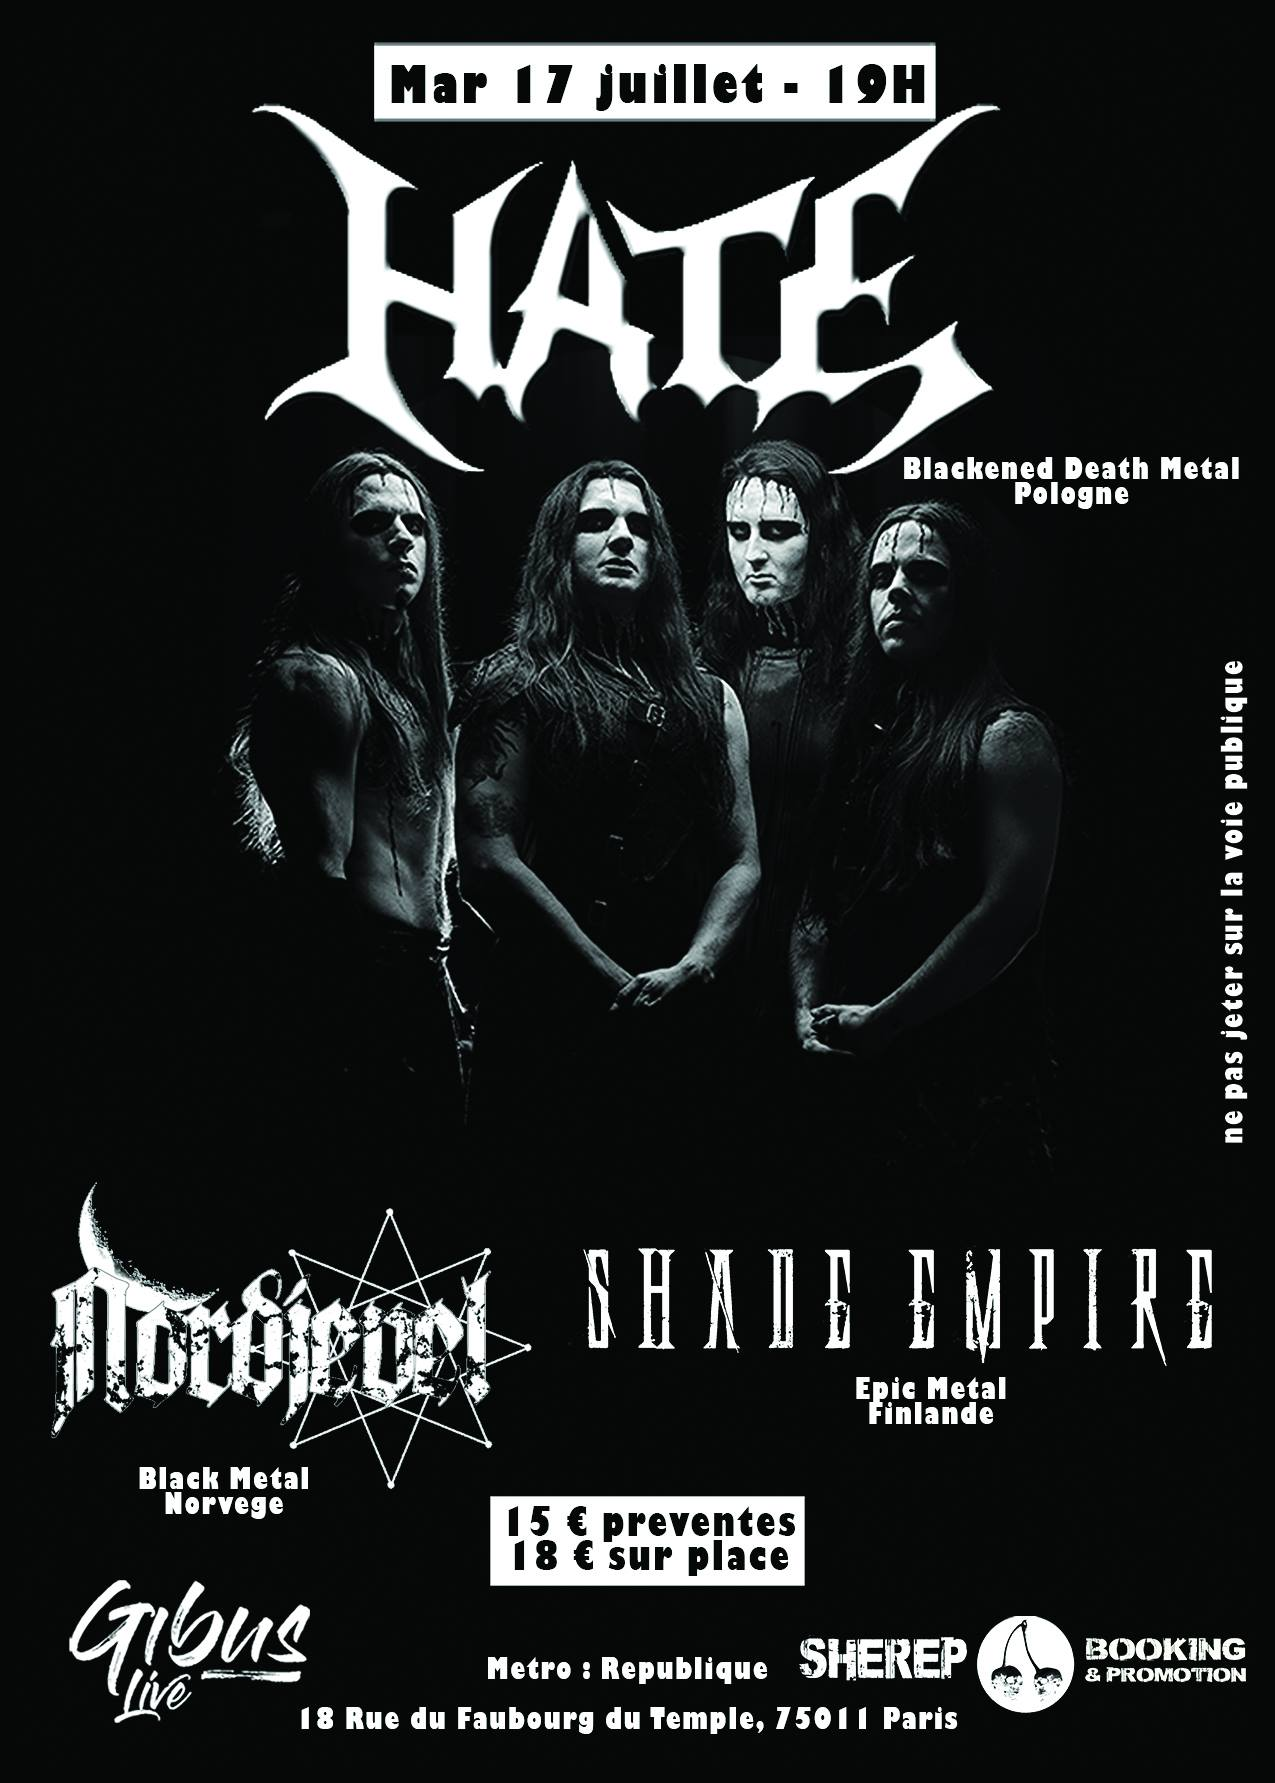 Hate / Shade Empire / Nordjevel – Paris